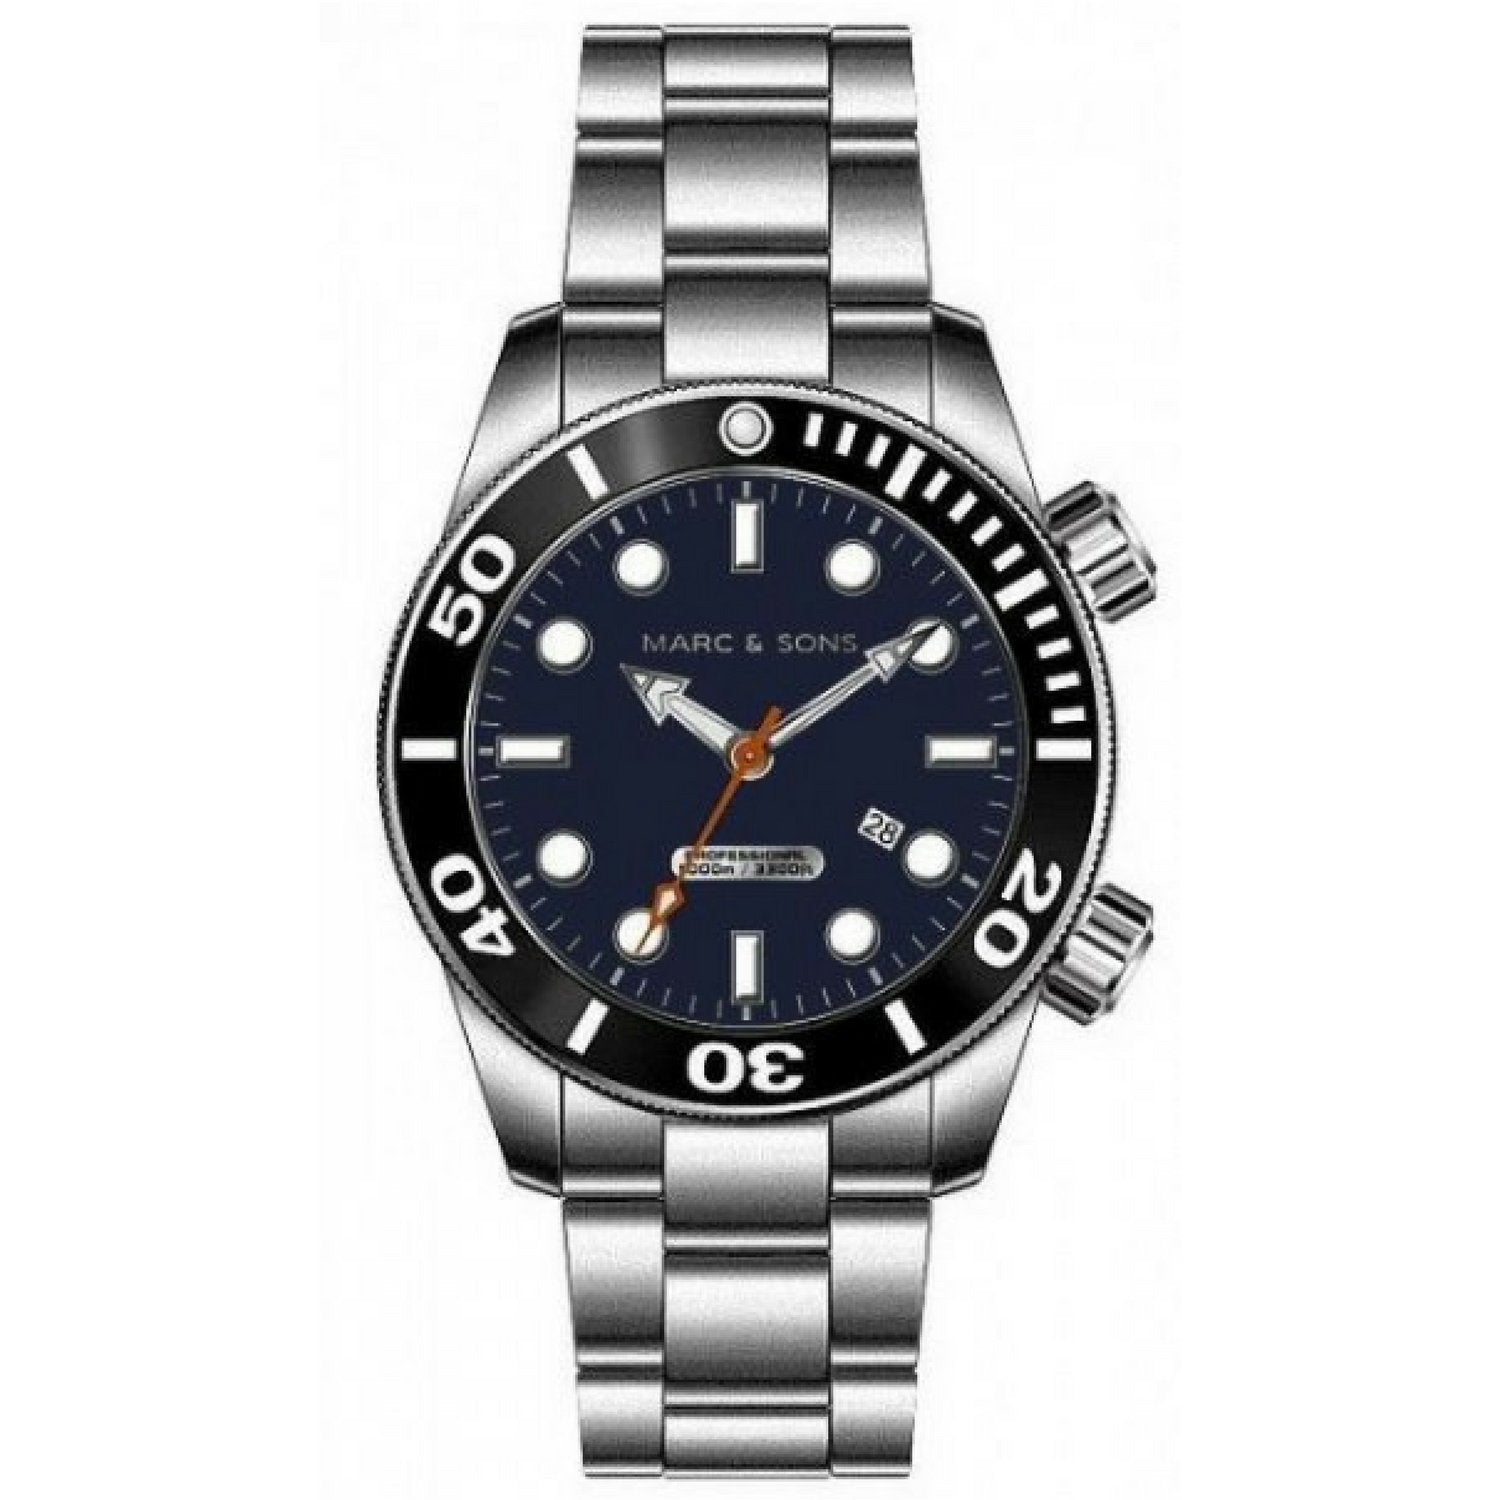 MARC & SONS 1000M Professional Automatic Divers Watch MSD-043